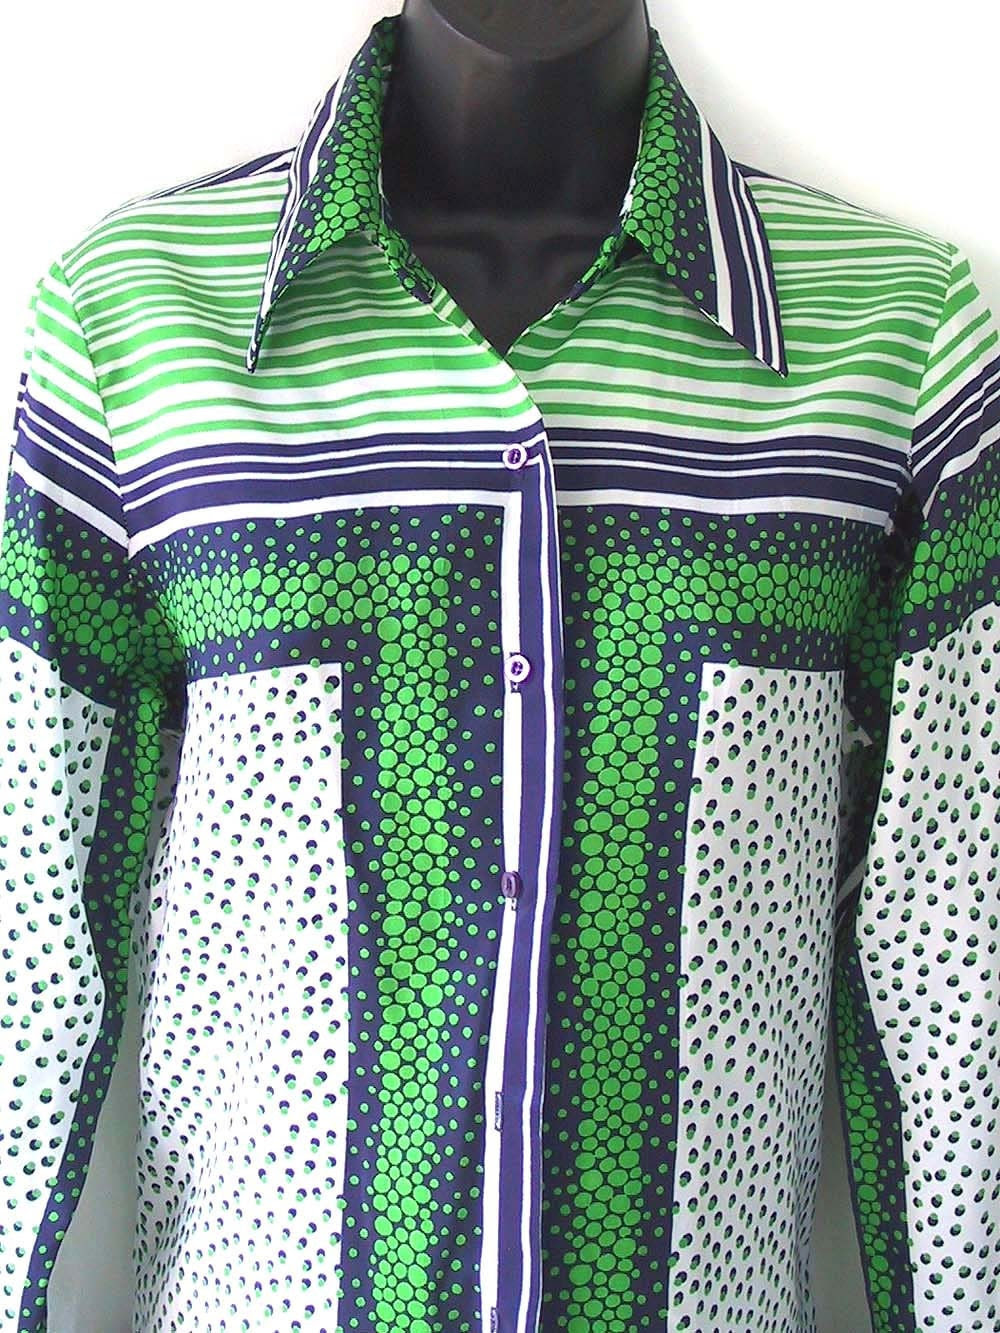 70s Geometric Print Green White and Blue Blouse S M